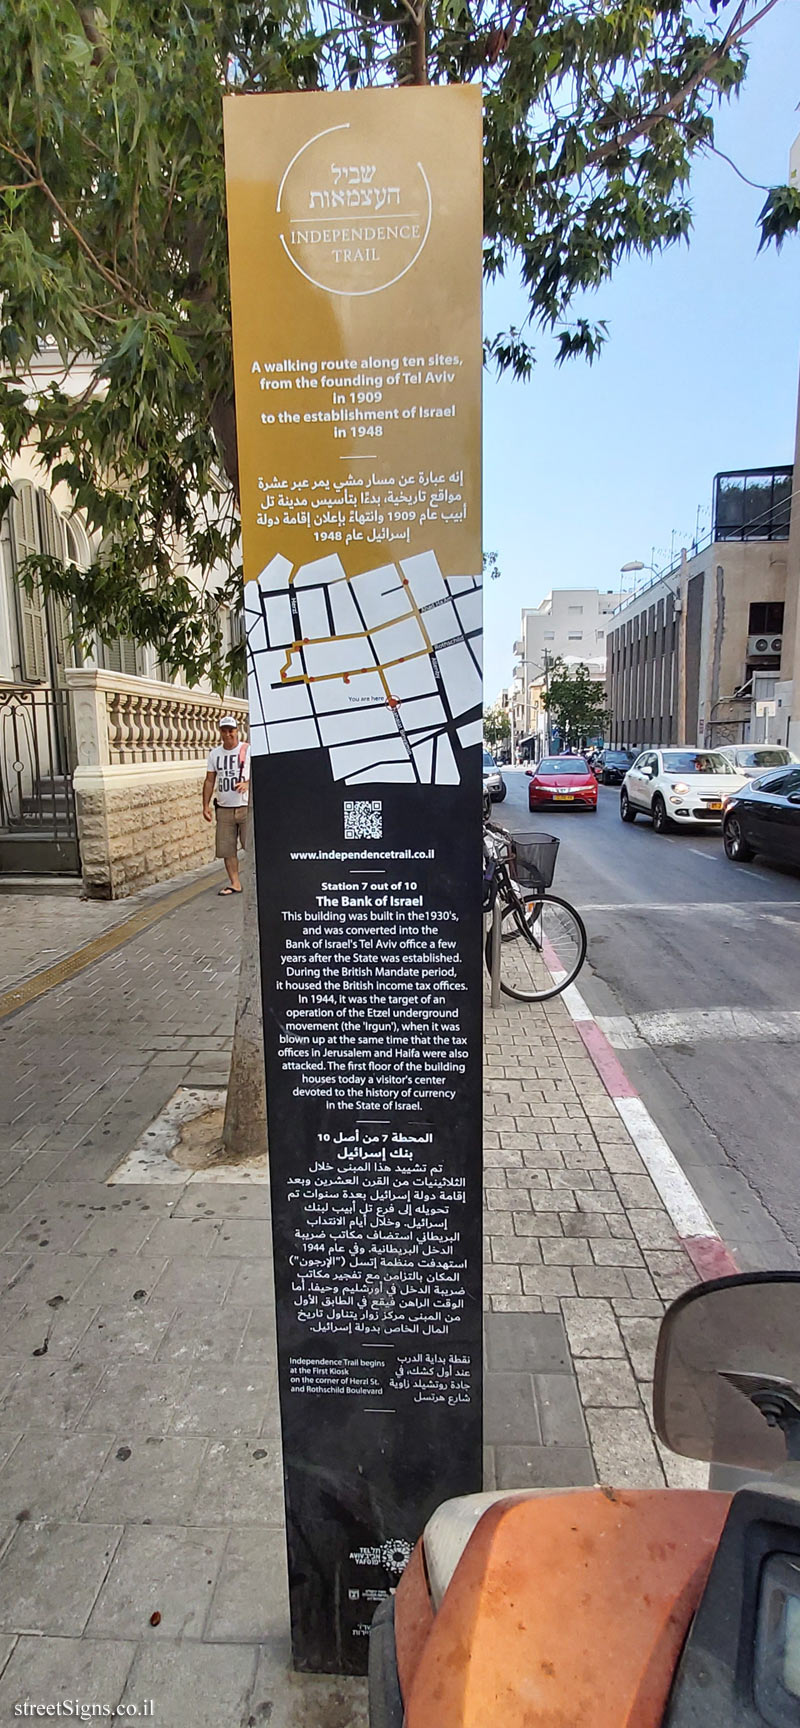 Tel Aviv - Independence Trail - Bank of Israel - Information (English and Arabic)